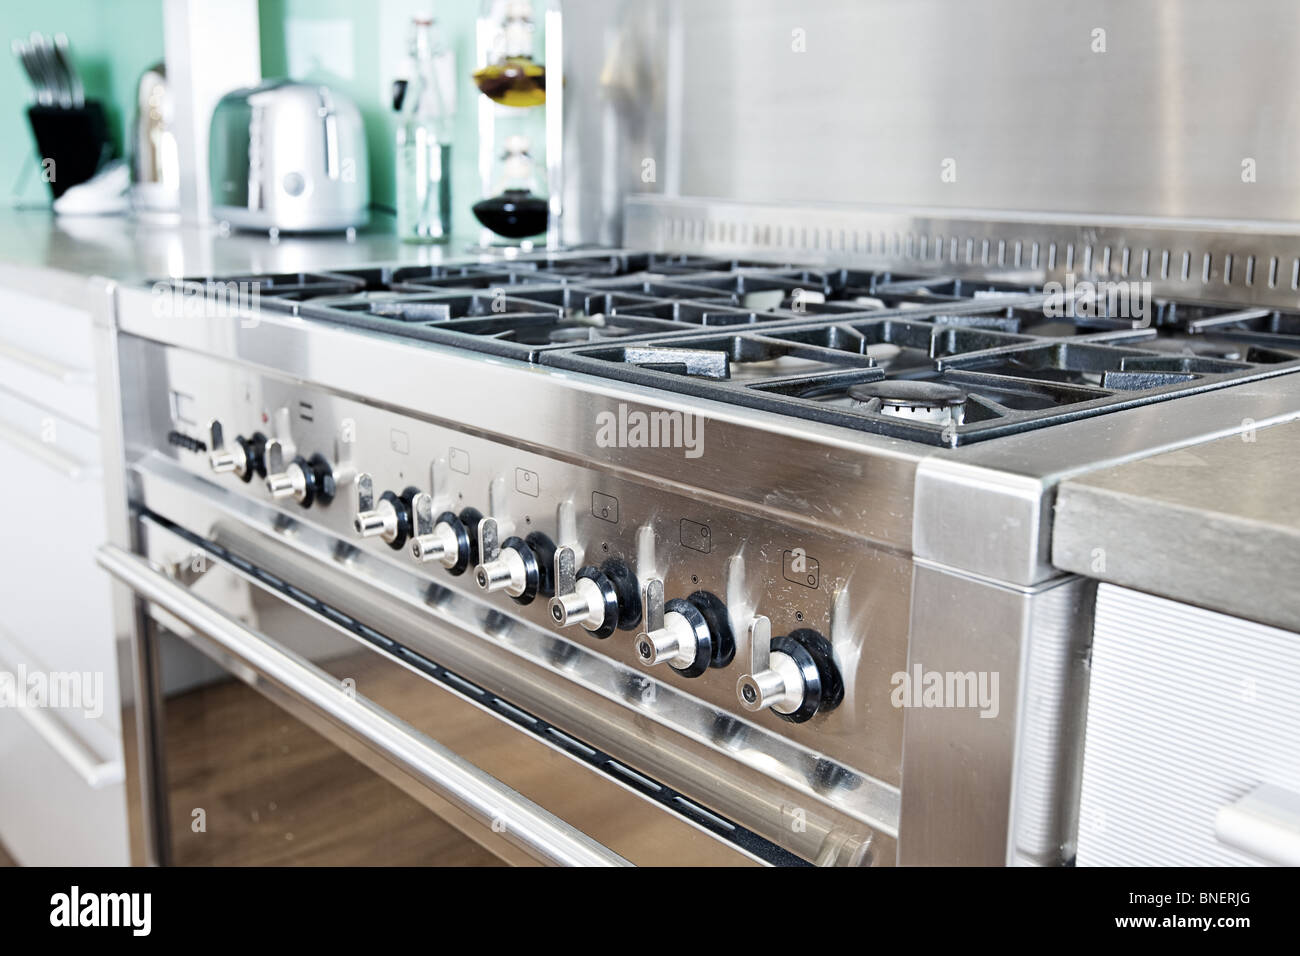 Close Up Shot Across Cooker in Modern Colourful Kitchen - Stock Image